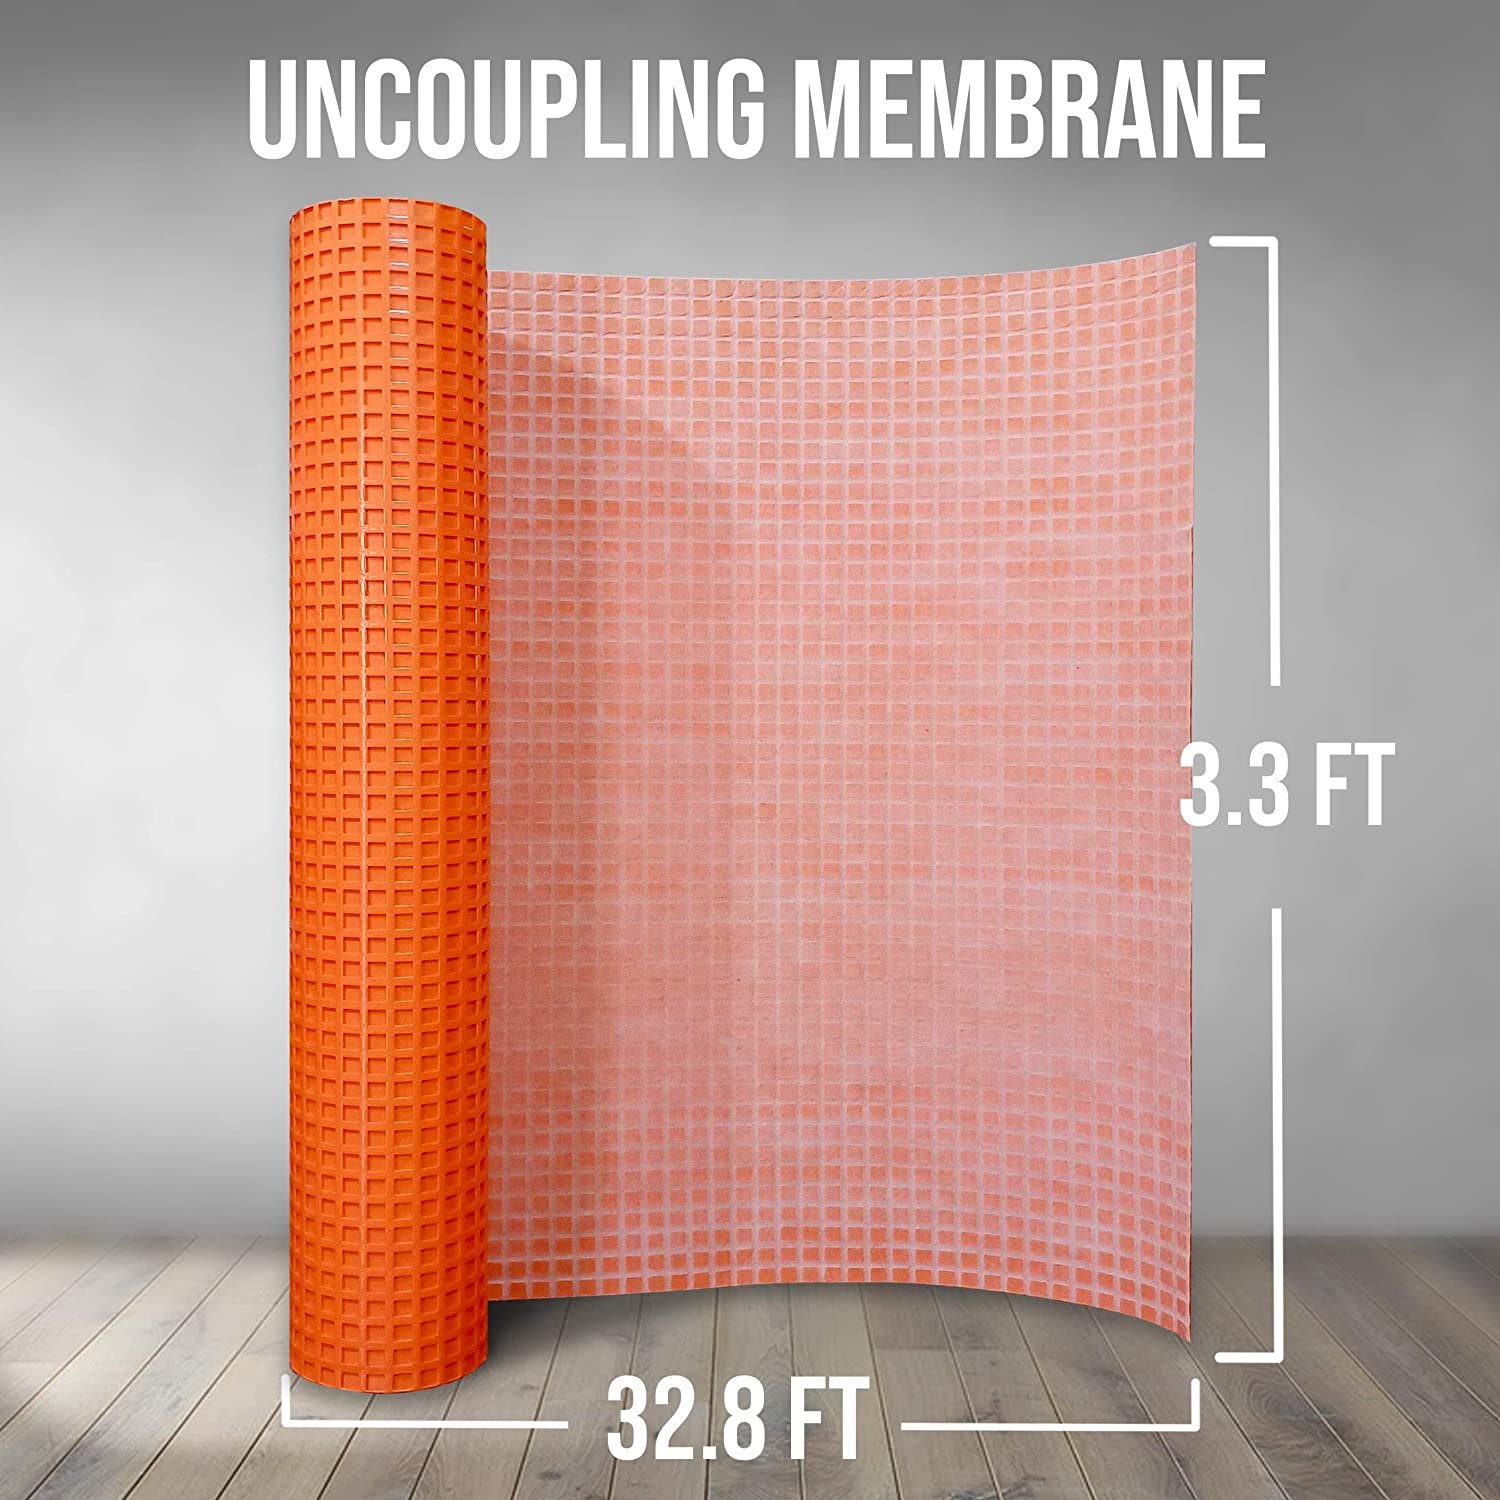 Uncoupling Membrane 3.3 feet x 32.8 feet // 108 Square Feet Waterproofing 1//8 inch Thick Anti-Fracture Tile Underlayment Mat Crack Isolation Membrane